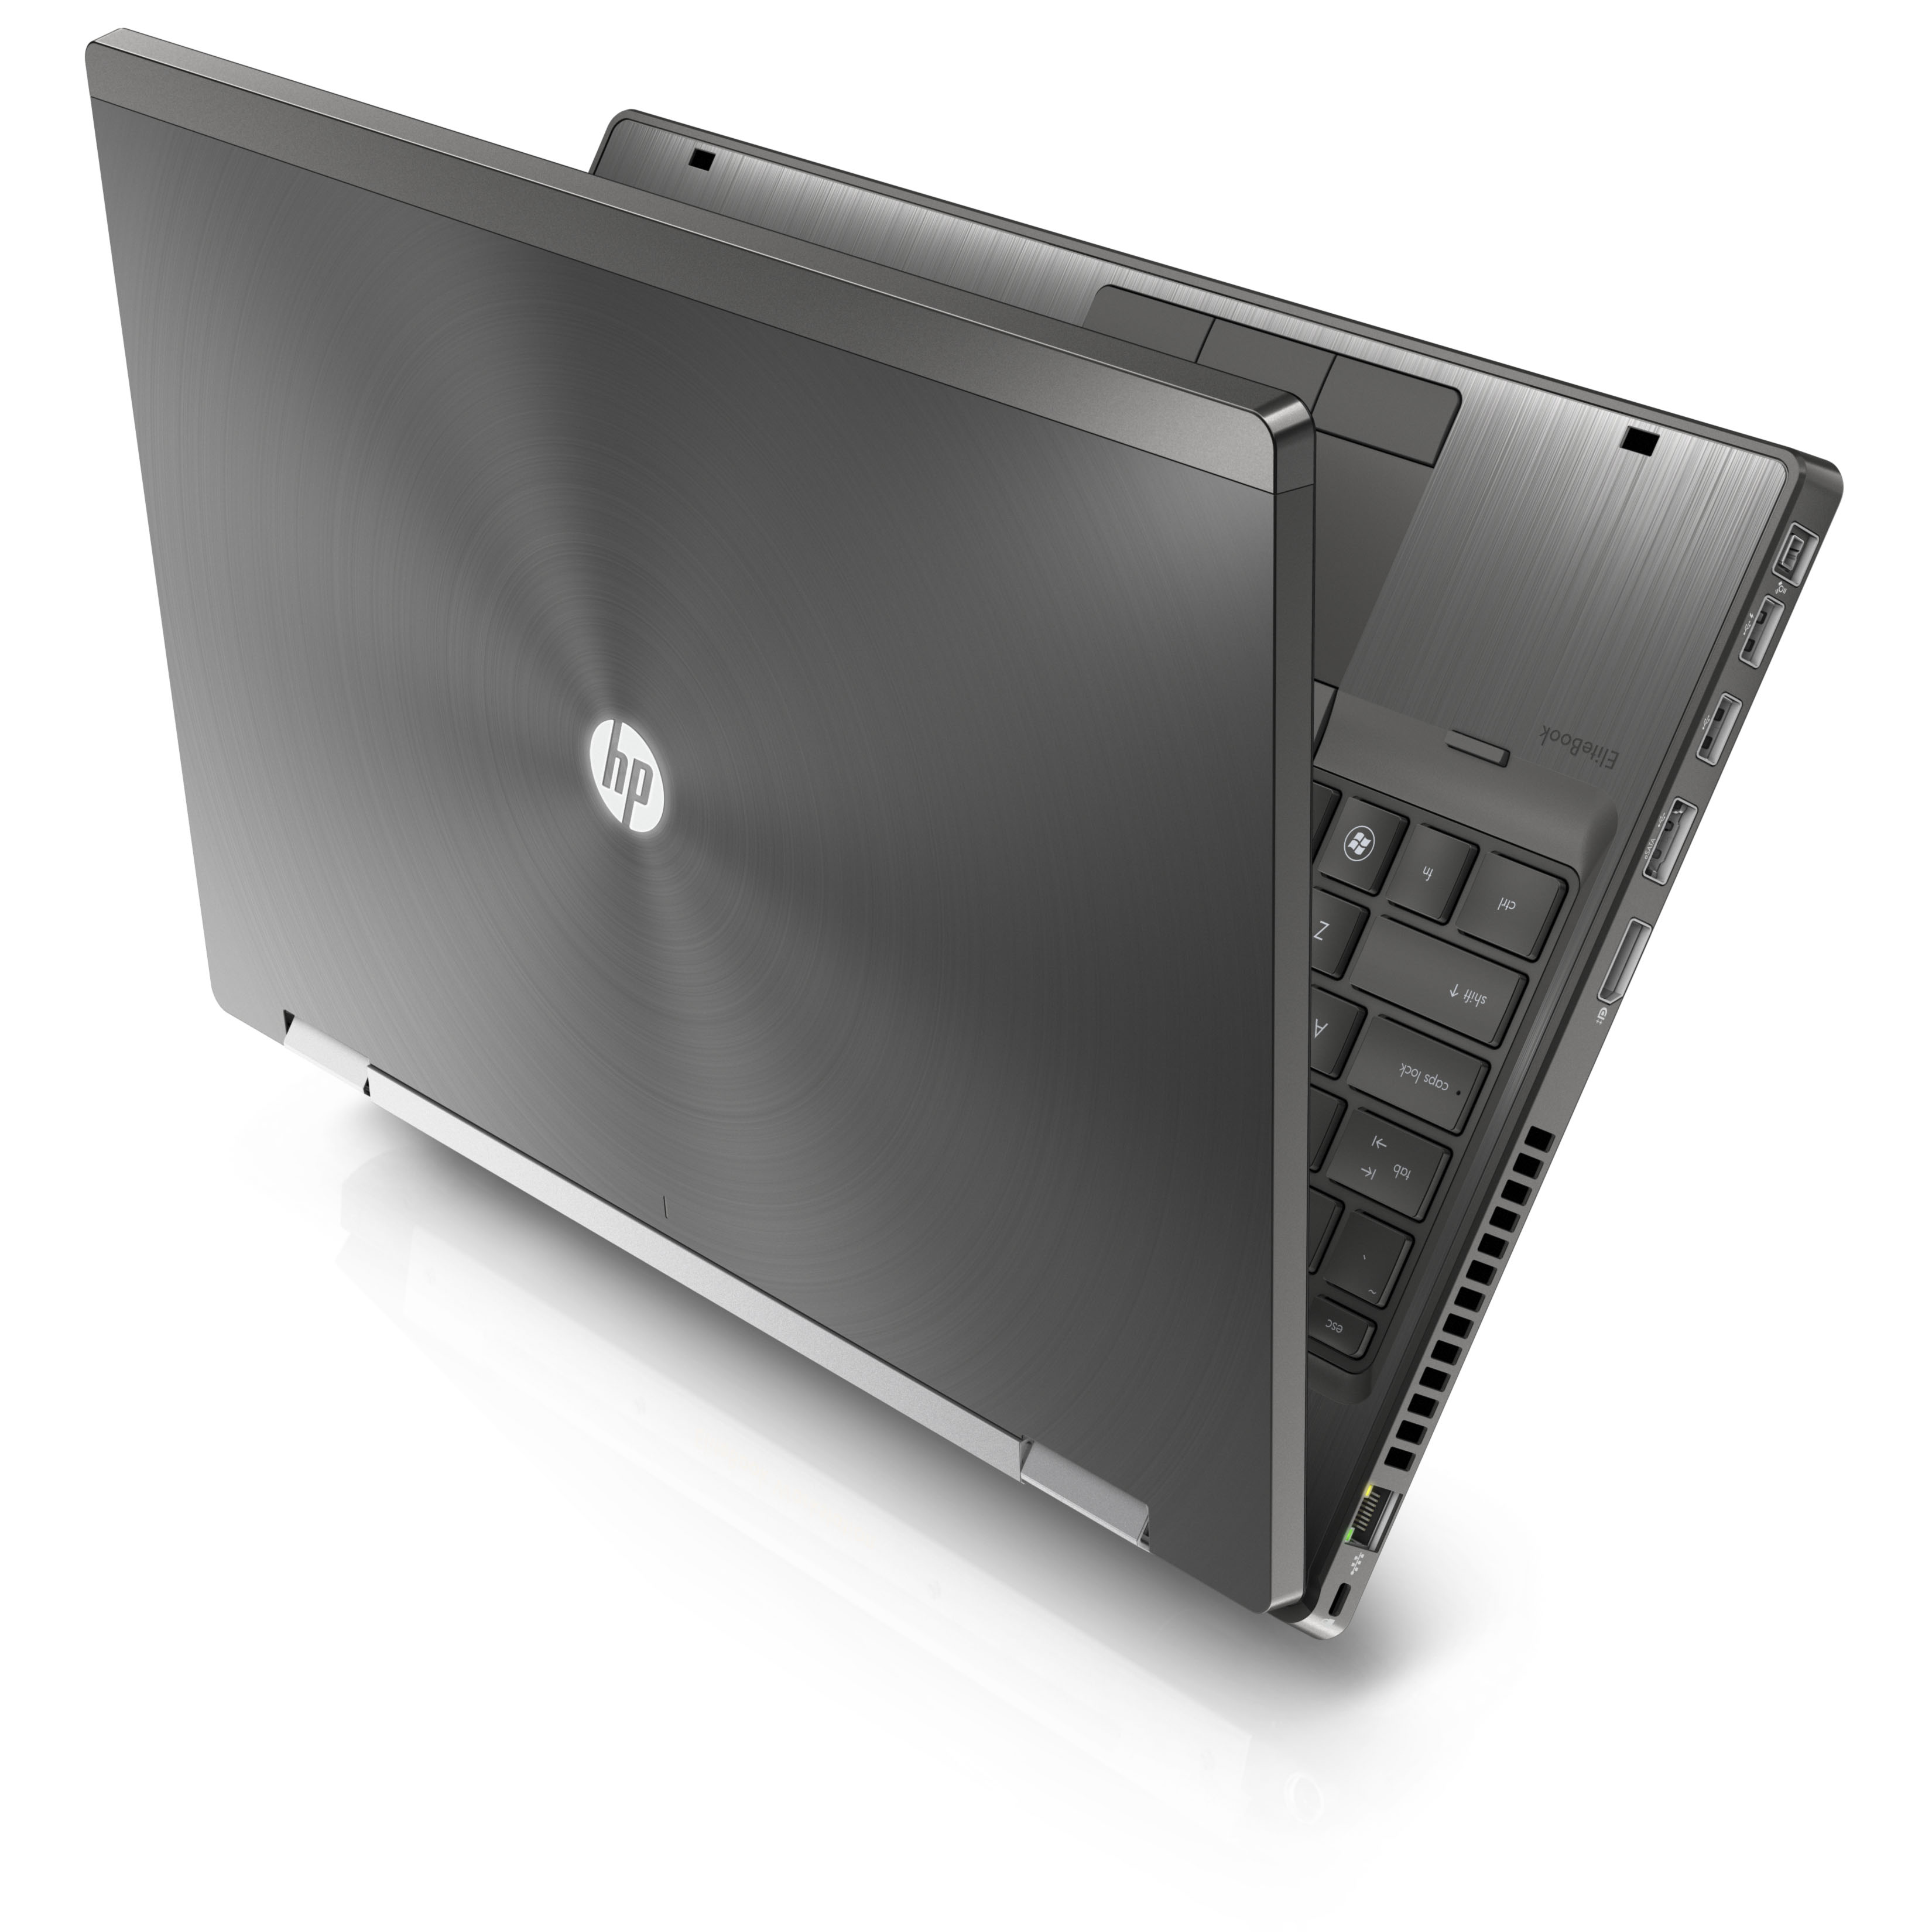 EliteBook 8560w Rear Left V